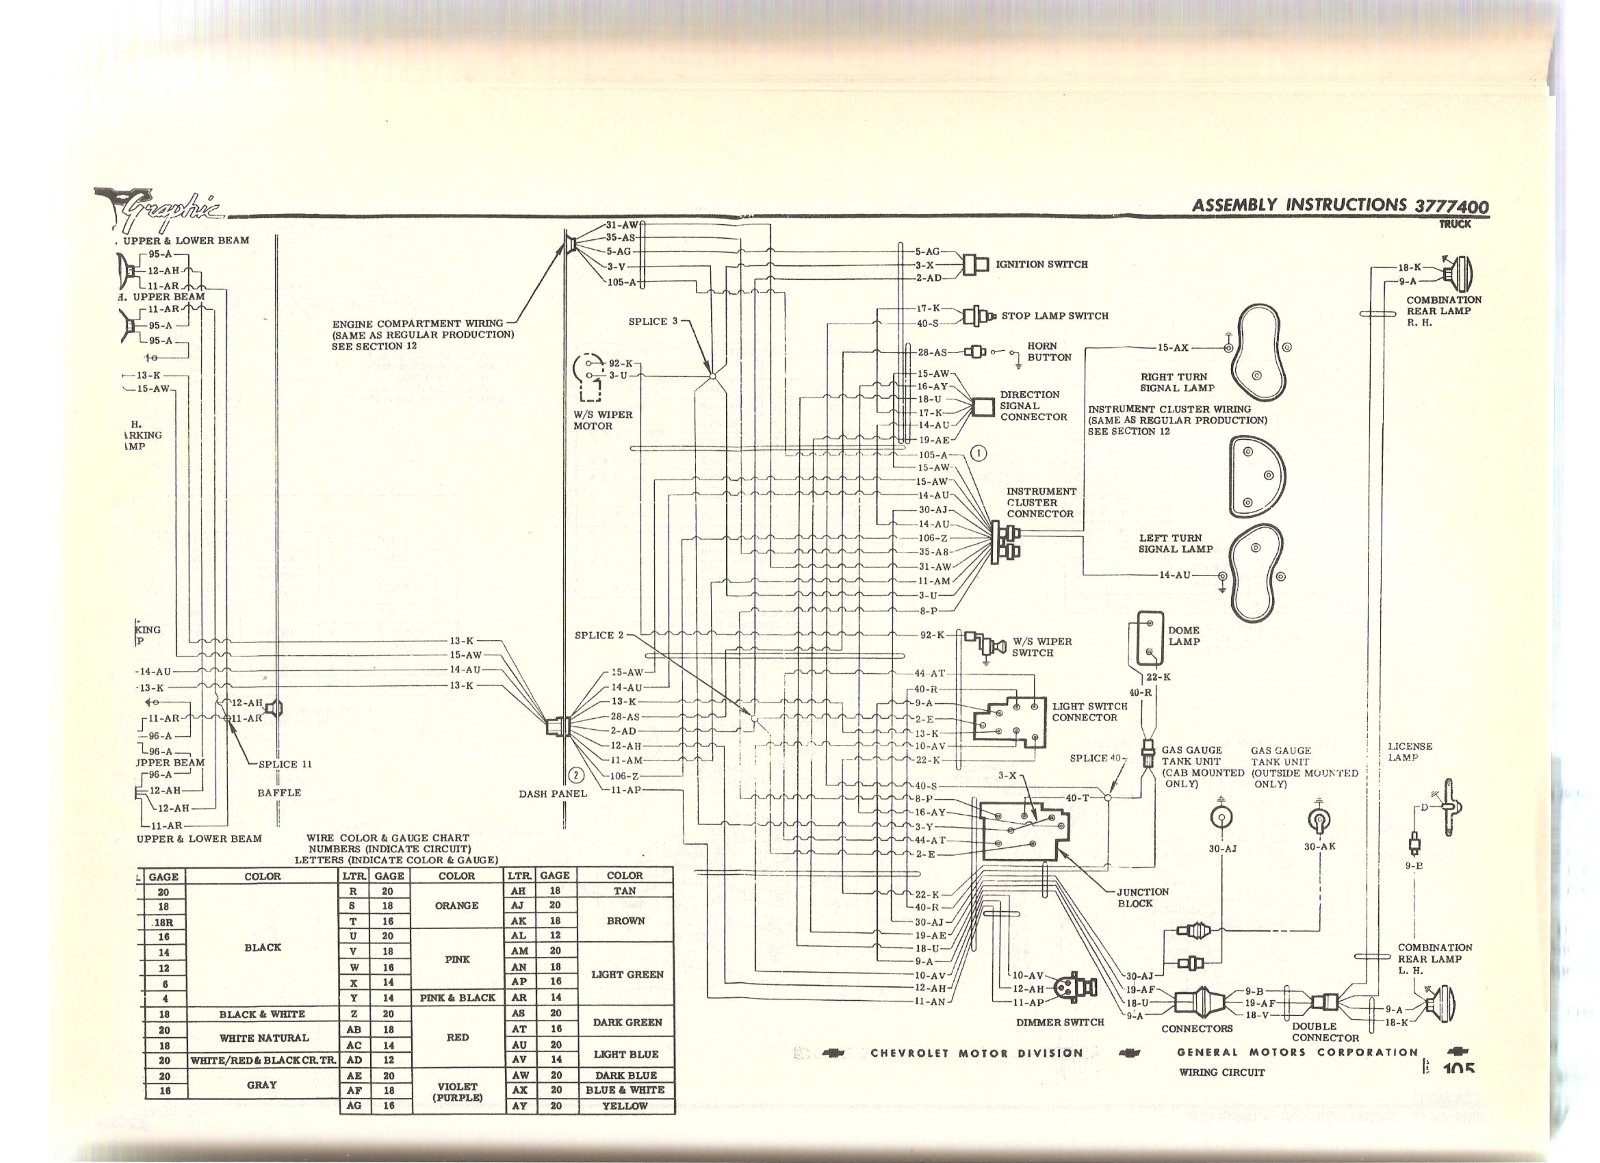 1950 chevy wiring diagram wiring diagrams for chevy trucks the wiring diagram wiring diagram the 1947 present chevrolet gmc truck